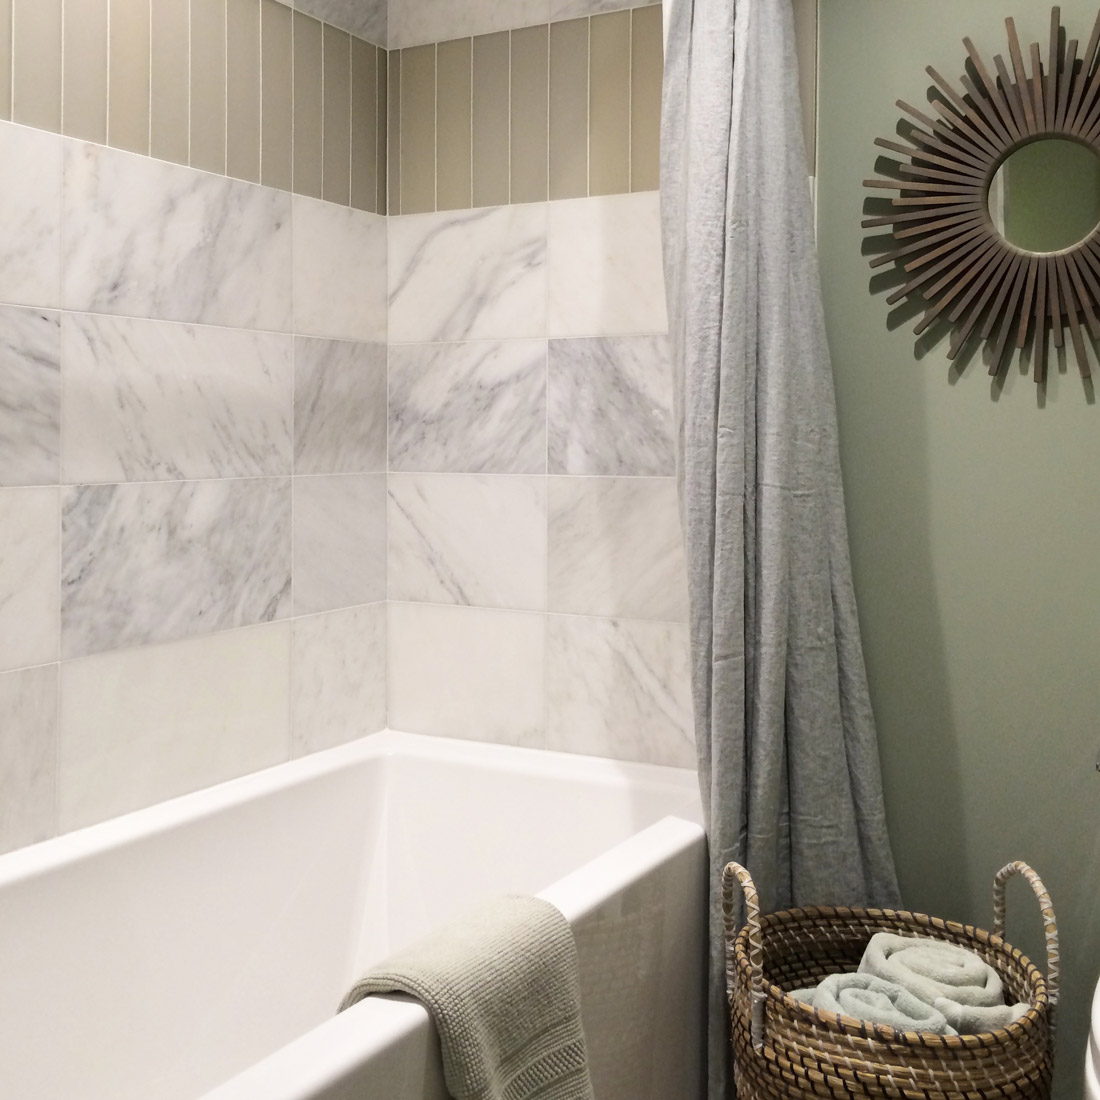 guest bathroom with marble and glass tile pattern in tub shower surround linen shower curtain and star burst mirror with basket for towels design by sara bates interior design